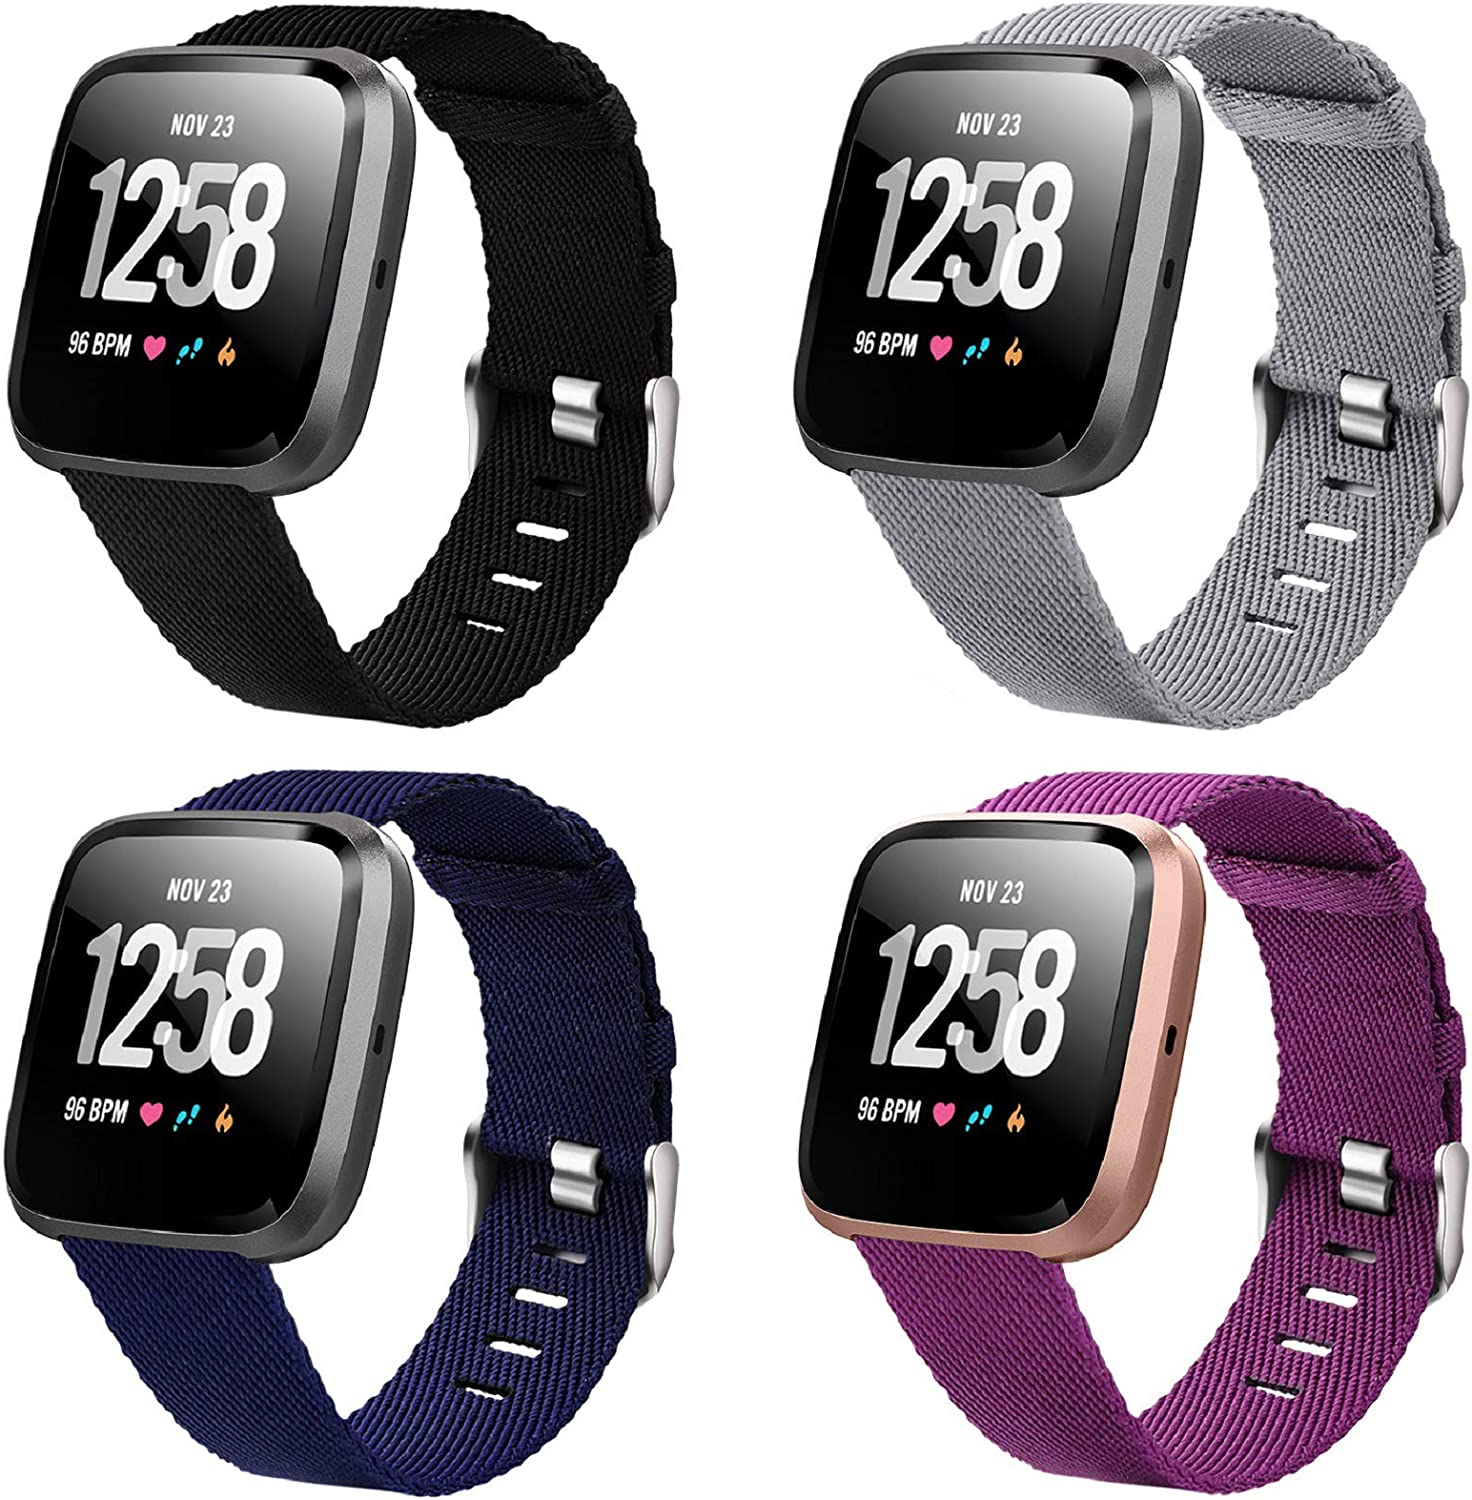 Laneco Bands Compatible with Fitbit Versa Max 89% Chicago Mall OFF 2